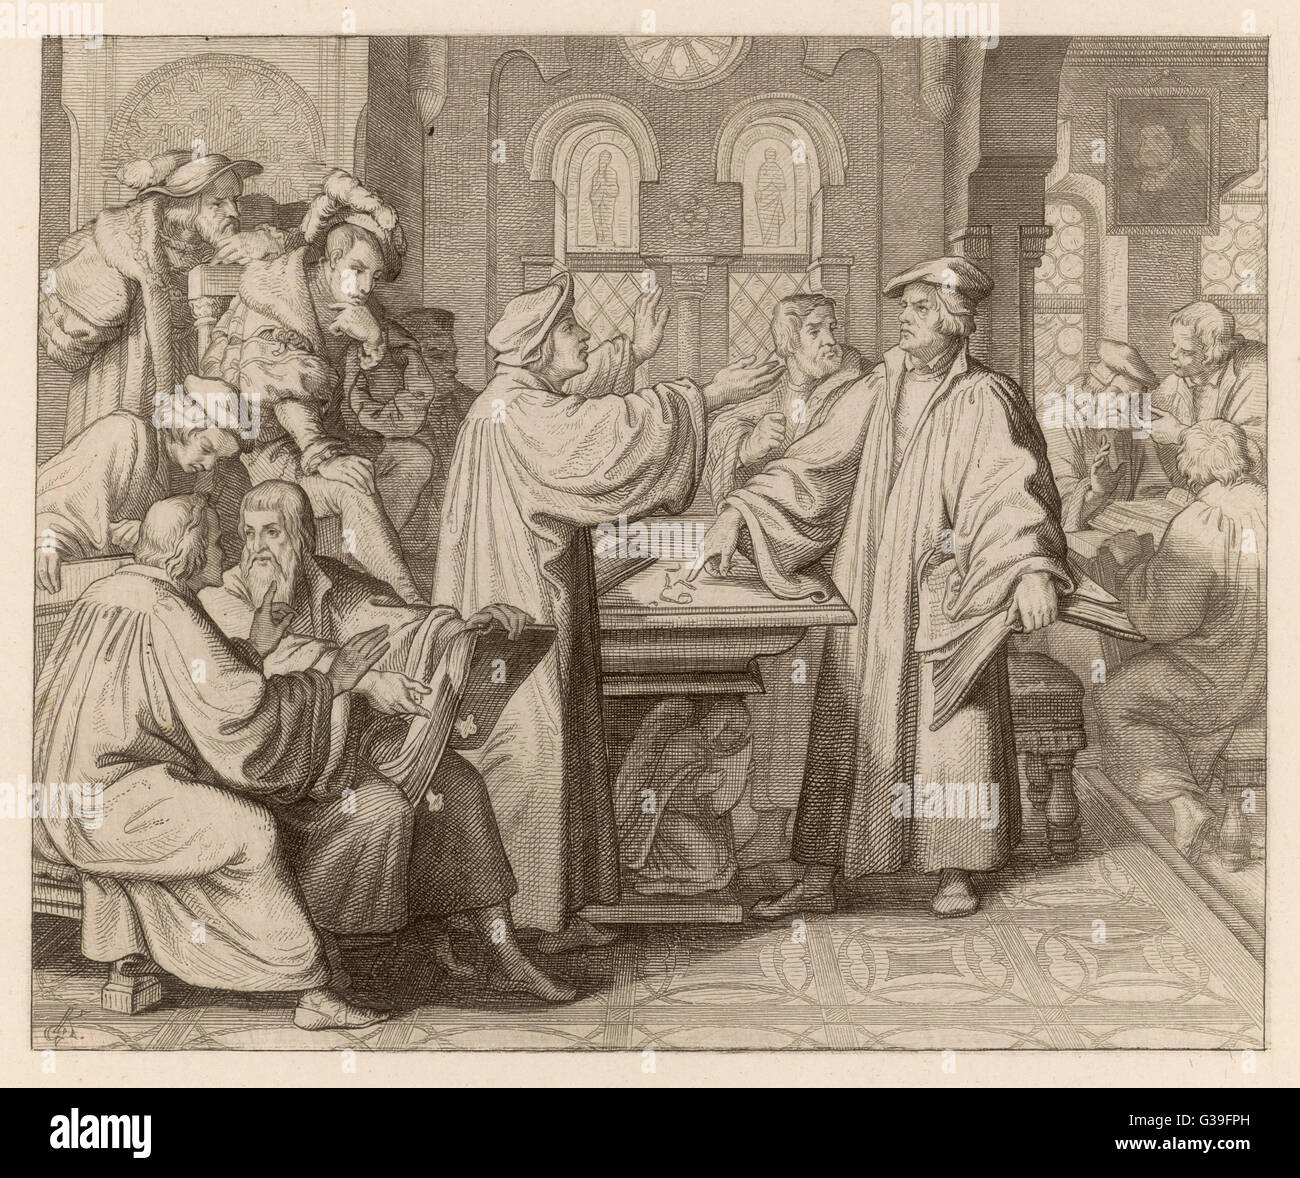 At Leipzig, in disputation  with Johann Eck, he denies the  supreme authority of popes and  councils       Date: - Stock Image